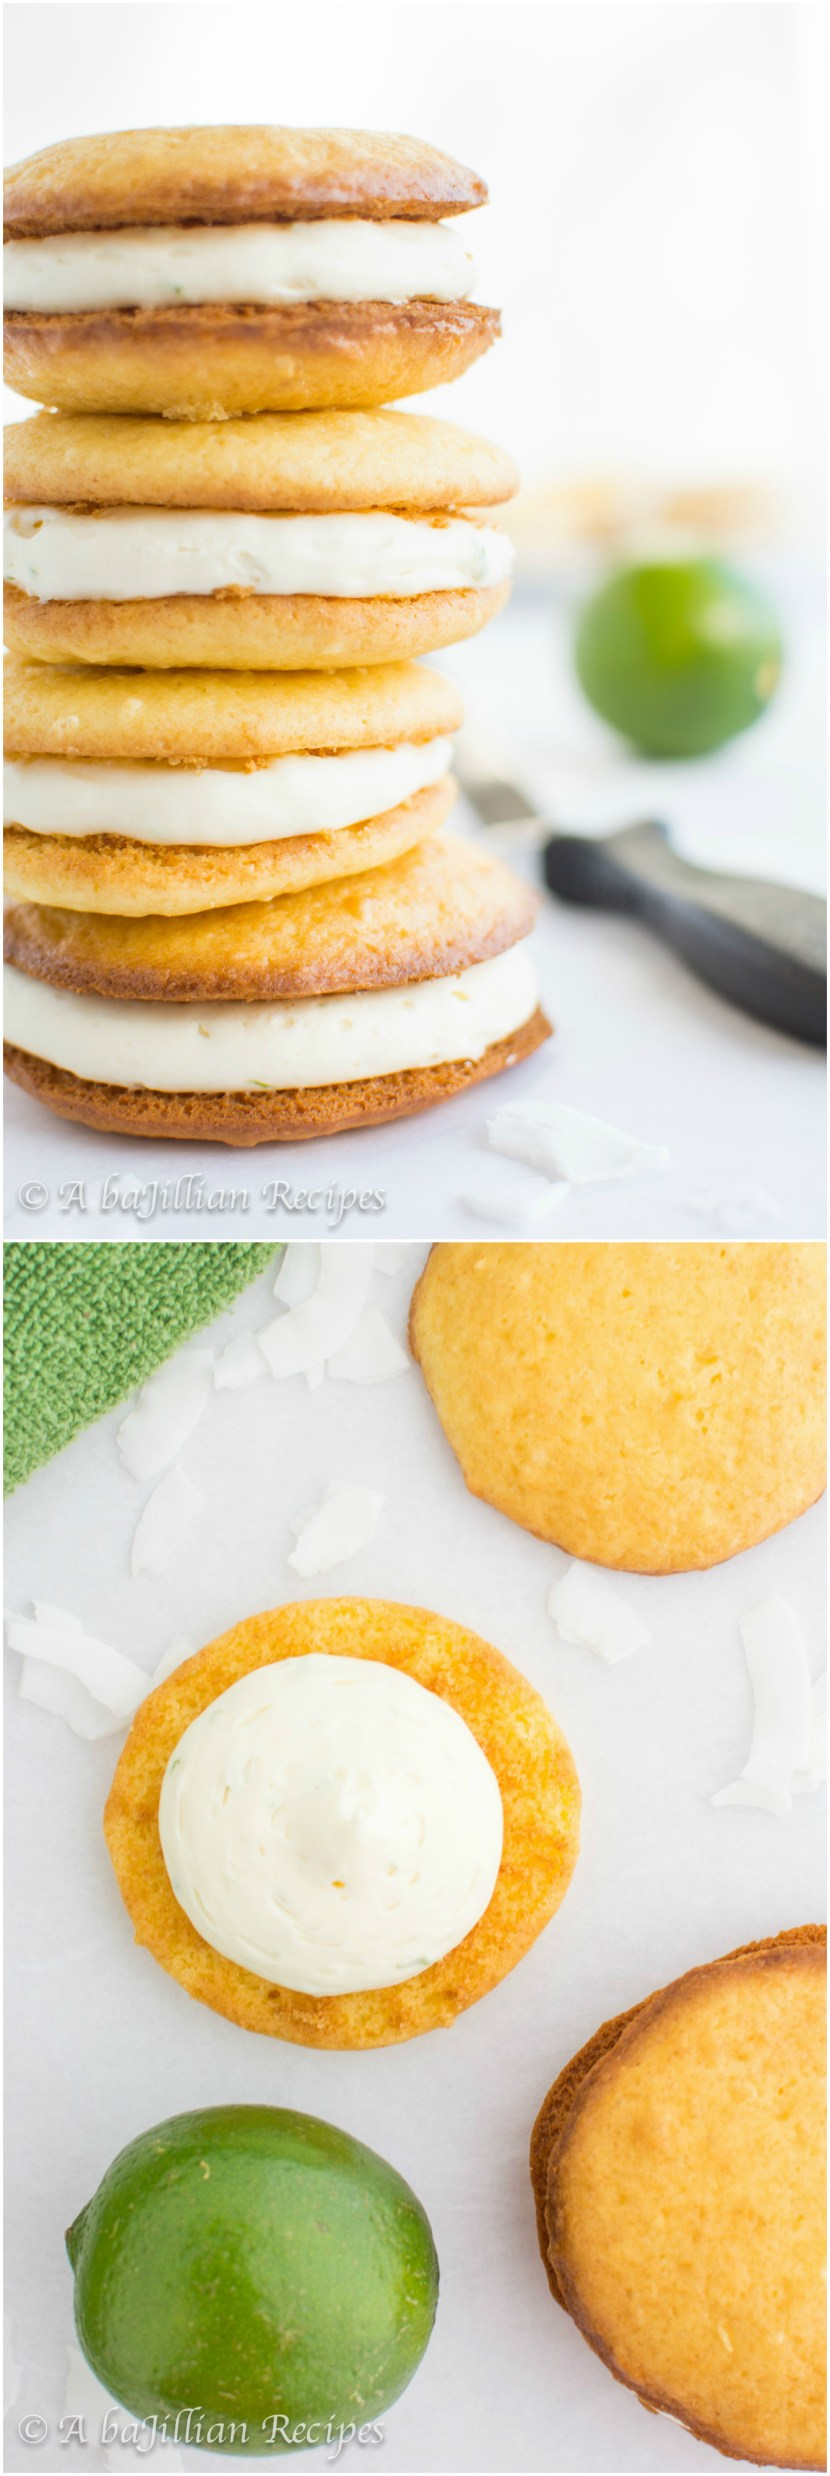 Coconut Lime Whoopie Pies   A baJillian Recipes1